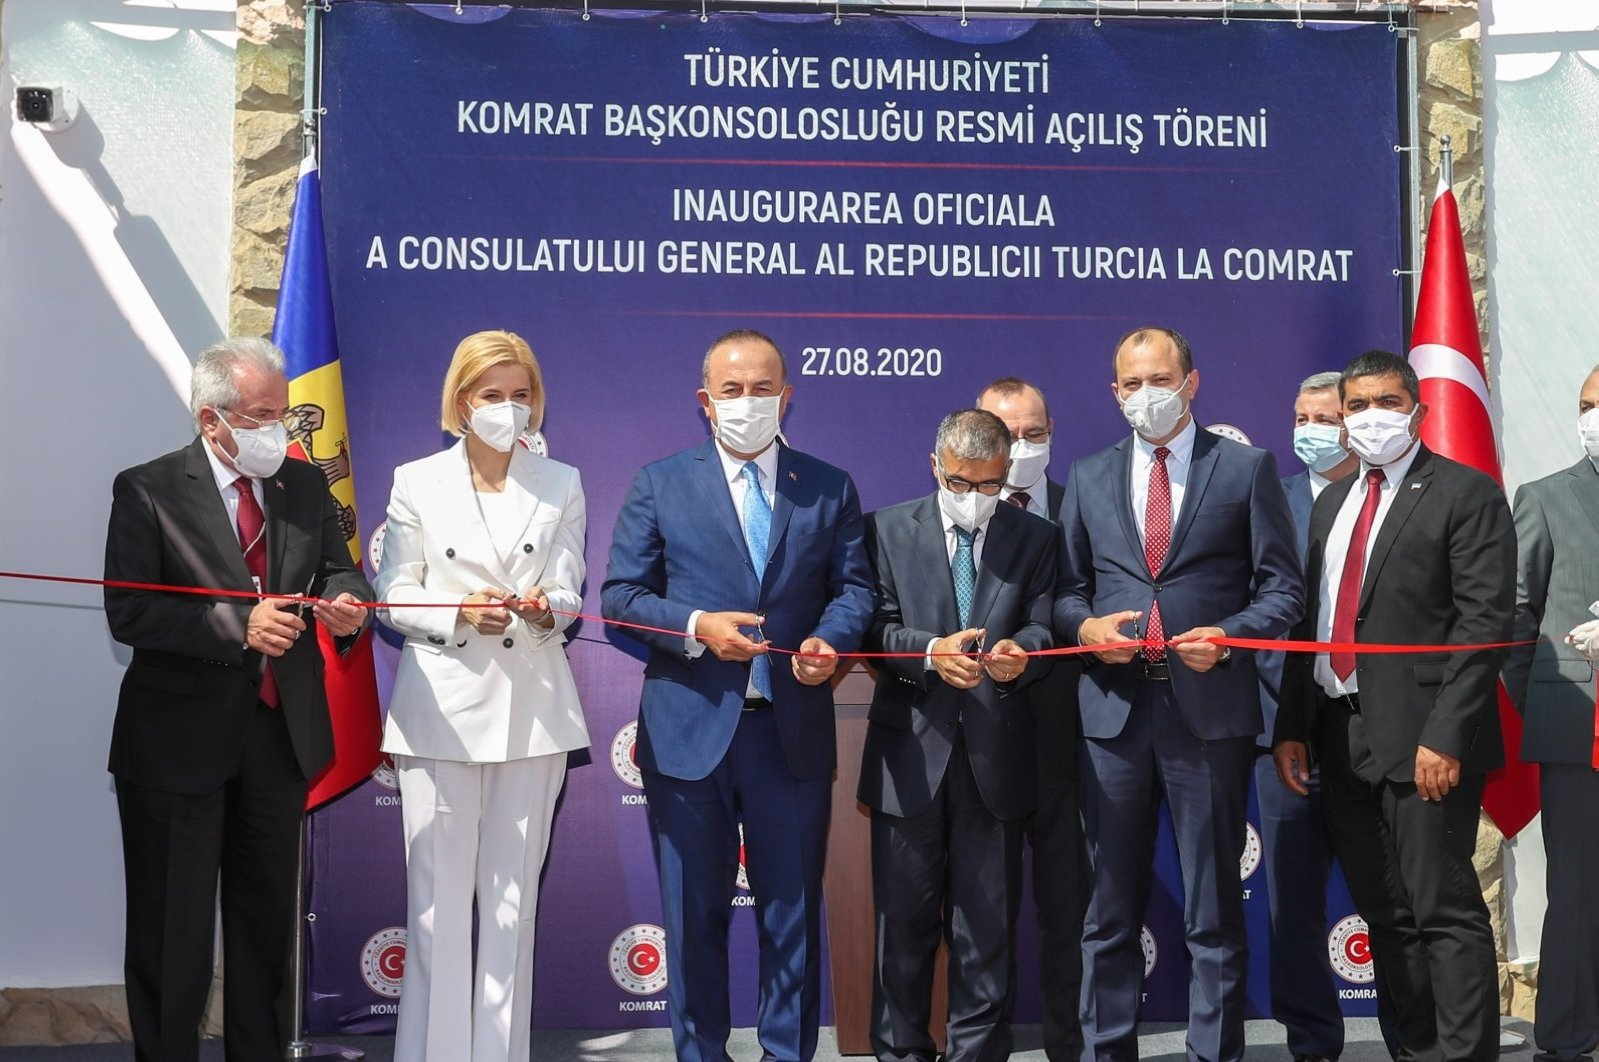 Foreign Minister Mevlüt Çavuşoğlu (3rd from left), inaugurates Turkey's consulate-general in Comrat, the capital of Moldova's Gagauzia autonomous region, along with his Moldovan counterpart Oleg Tsulya (2nd from right) and Gagauzia Gov. Irina Vlah (2nd from left), Aug. 27, 2020. (AA)